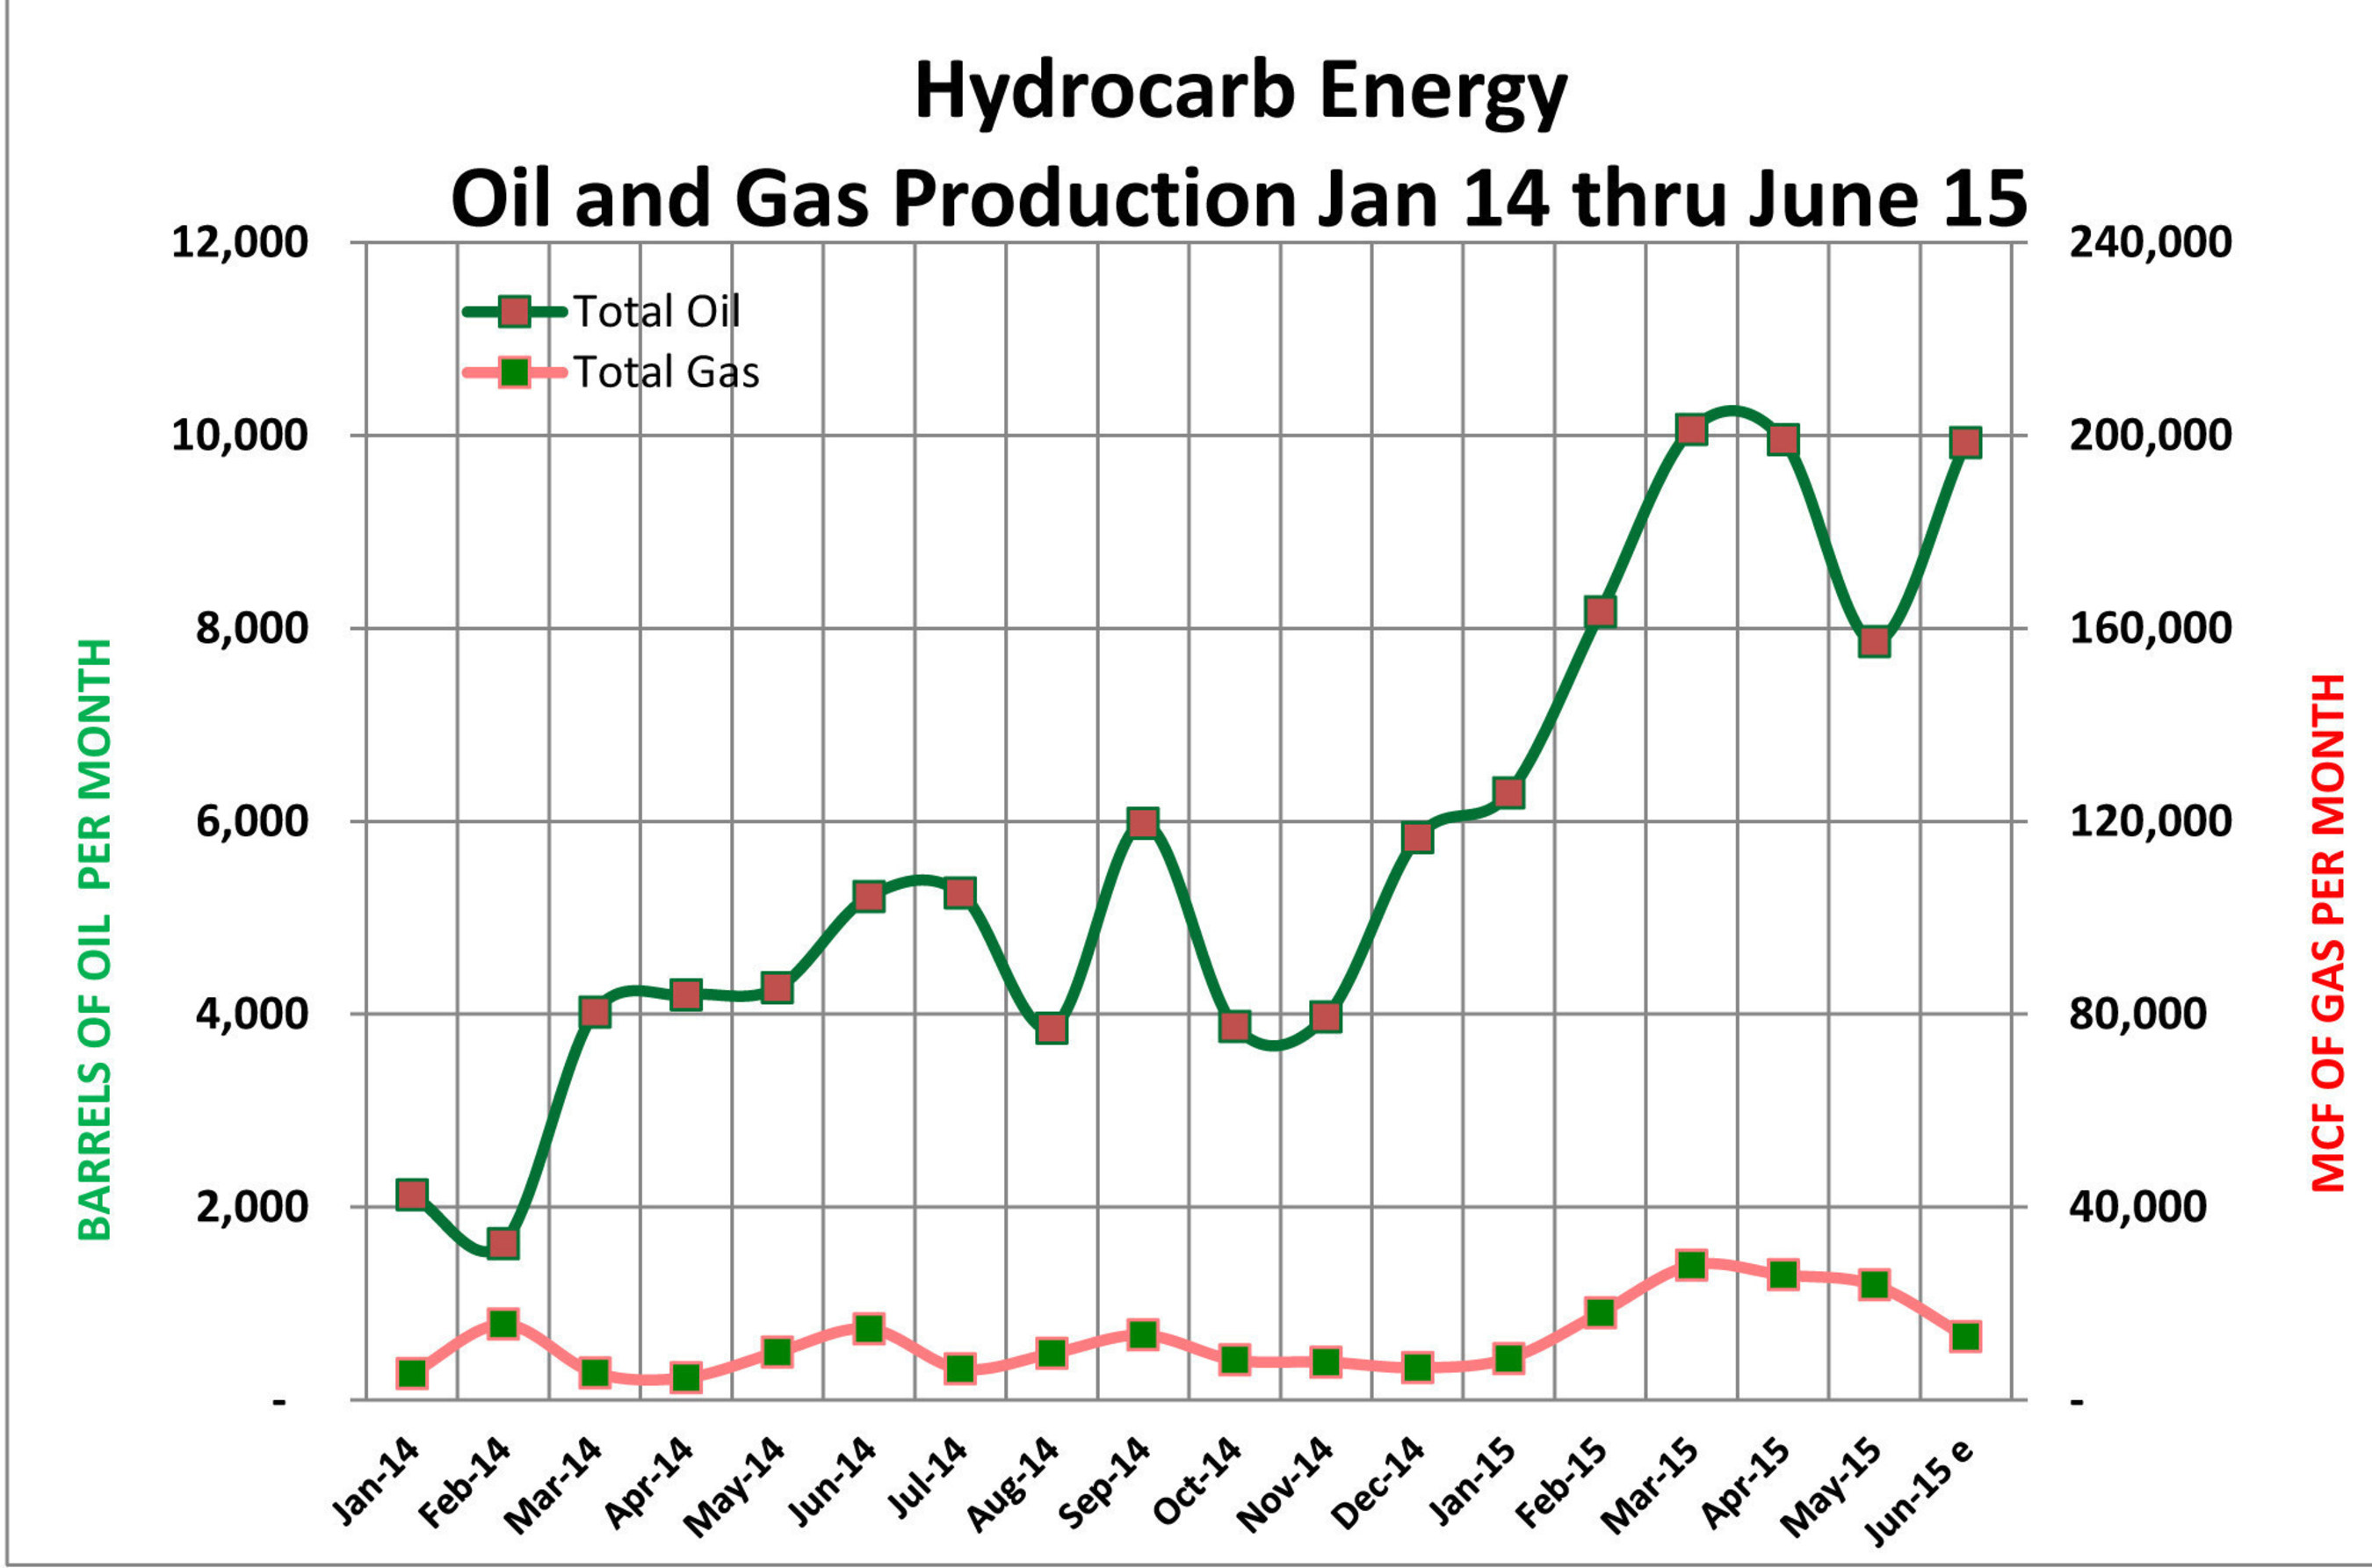 hydrocarb_energy_chart